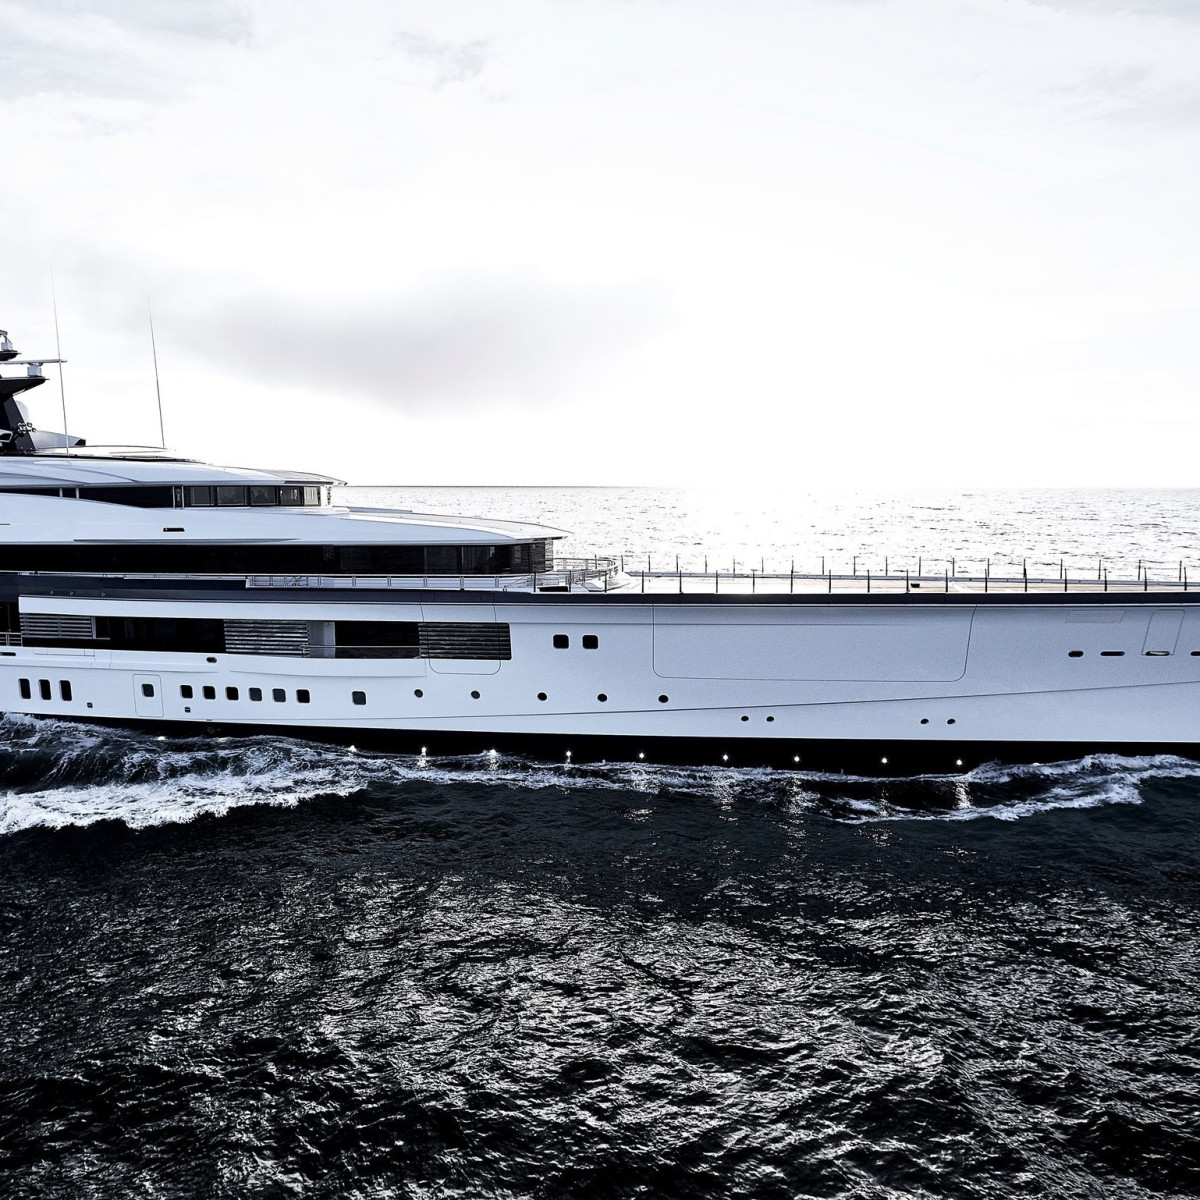 Jerry Jones buys $250M superyacht that's as long as a